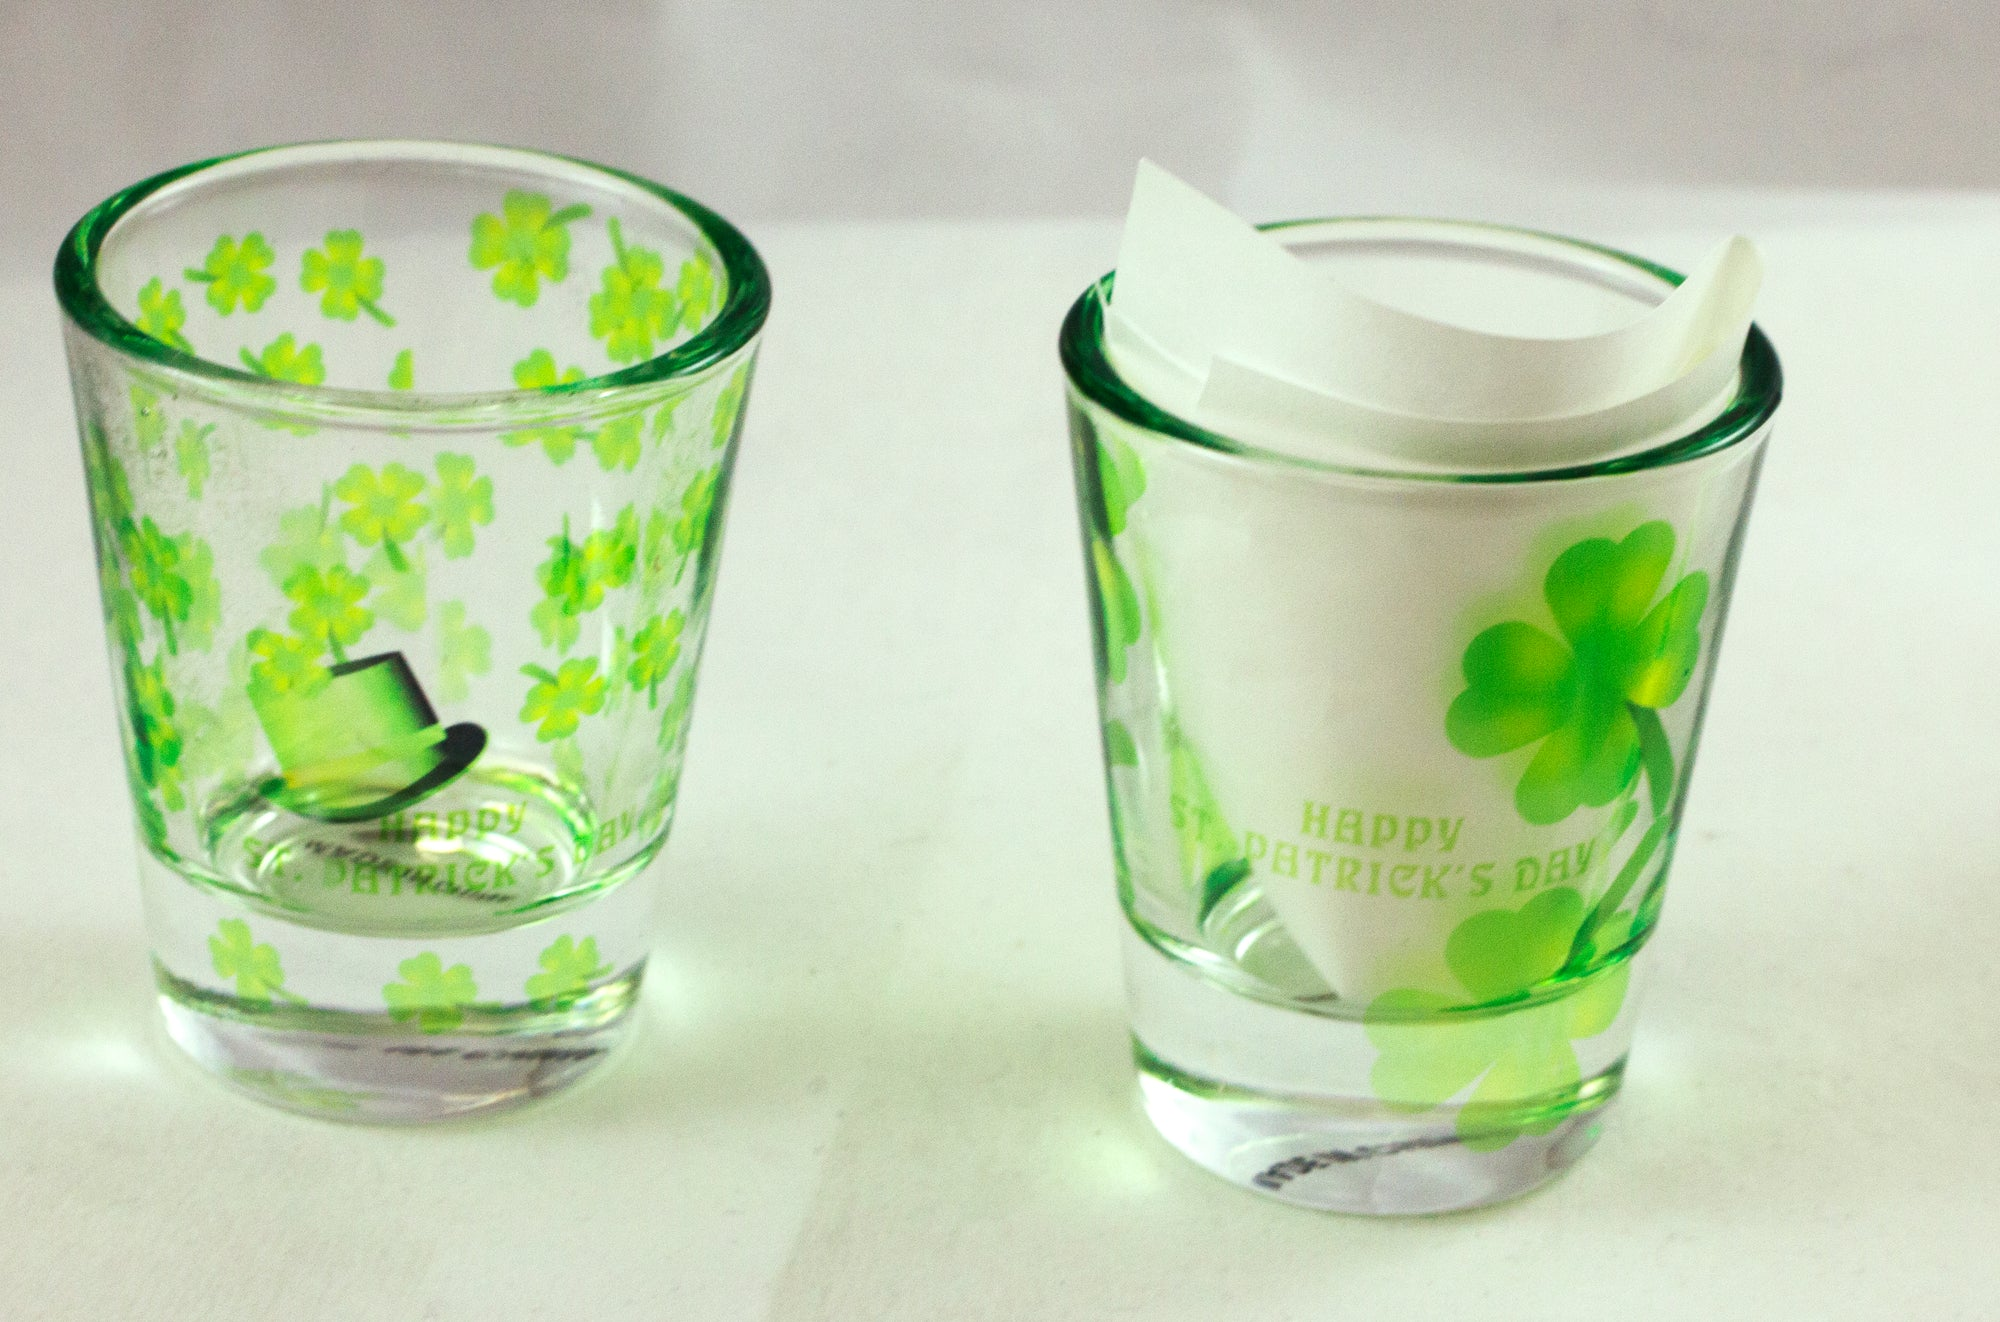 St. Patrick's Day Shotglass - Aspireimaginary